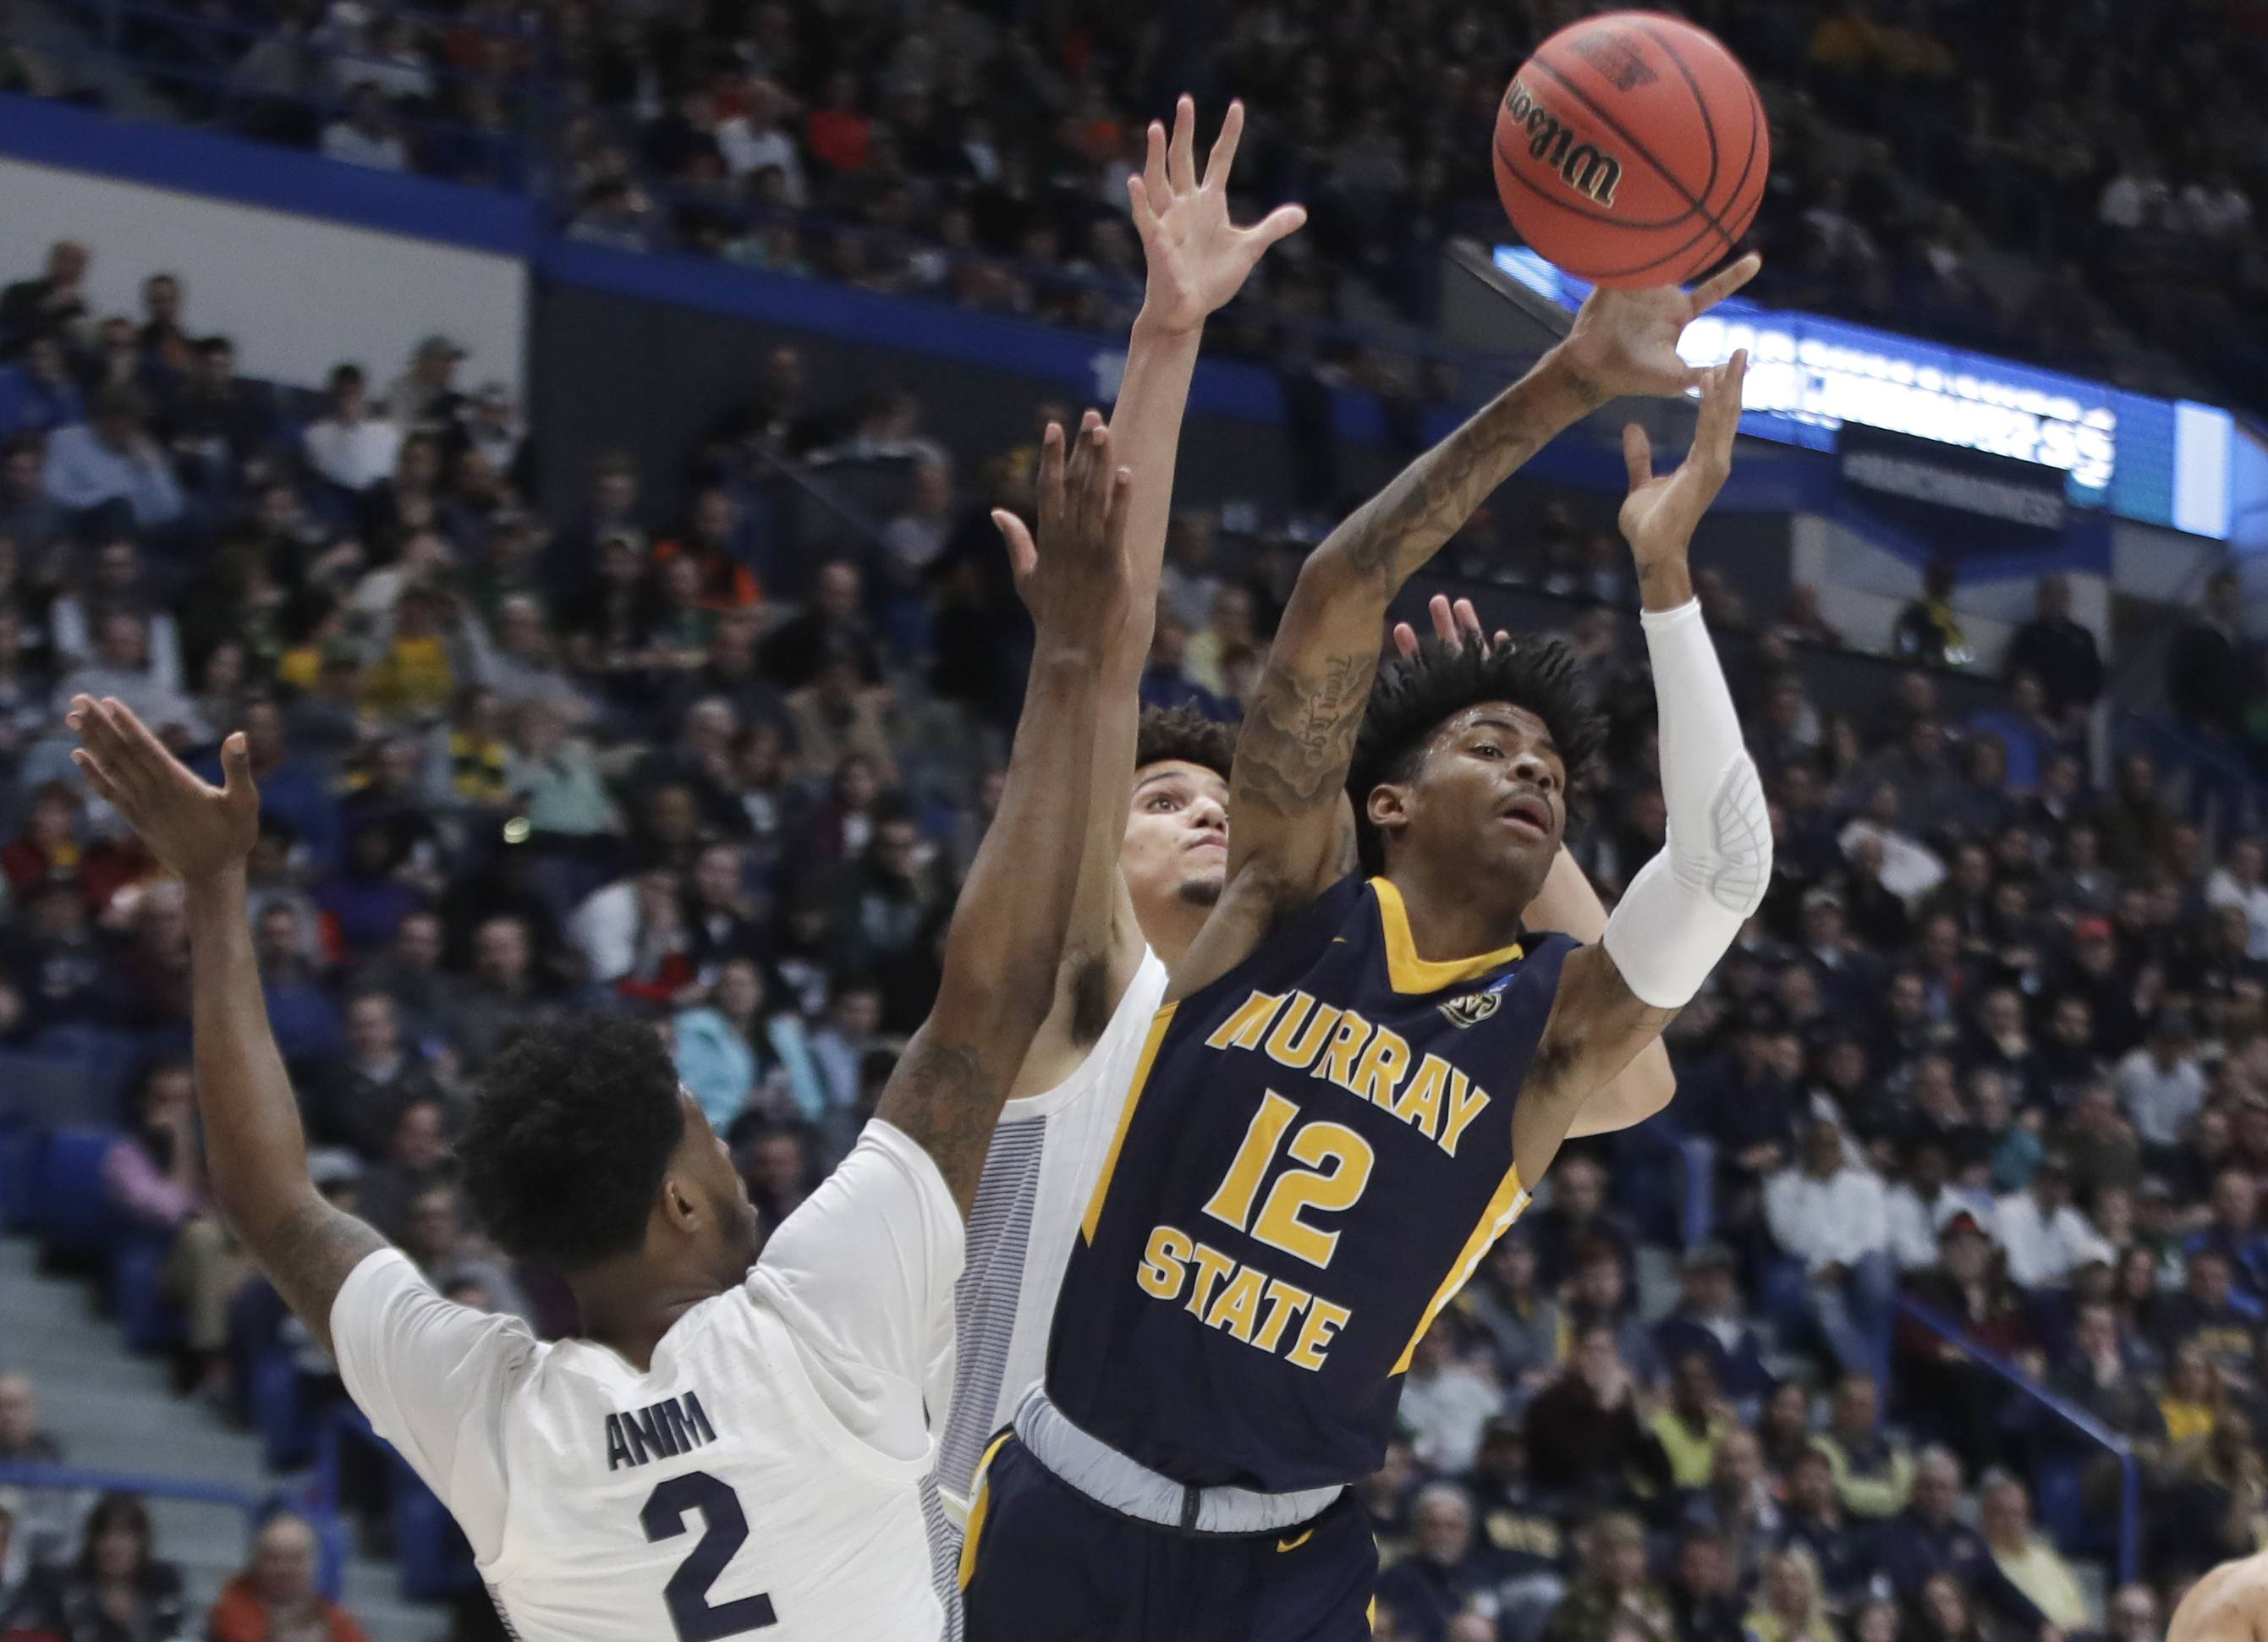 Murray State's Ja Morant (12) passes the ball under pressure from Marquette's Sacar Anim (2) and Brendan Bailey, behind, during the first half of a first round men's college basketball game in the NCAA Tournament, Thursday, March 21, 2019, in Hartford, Conn.